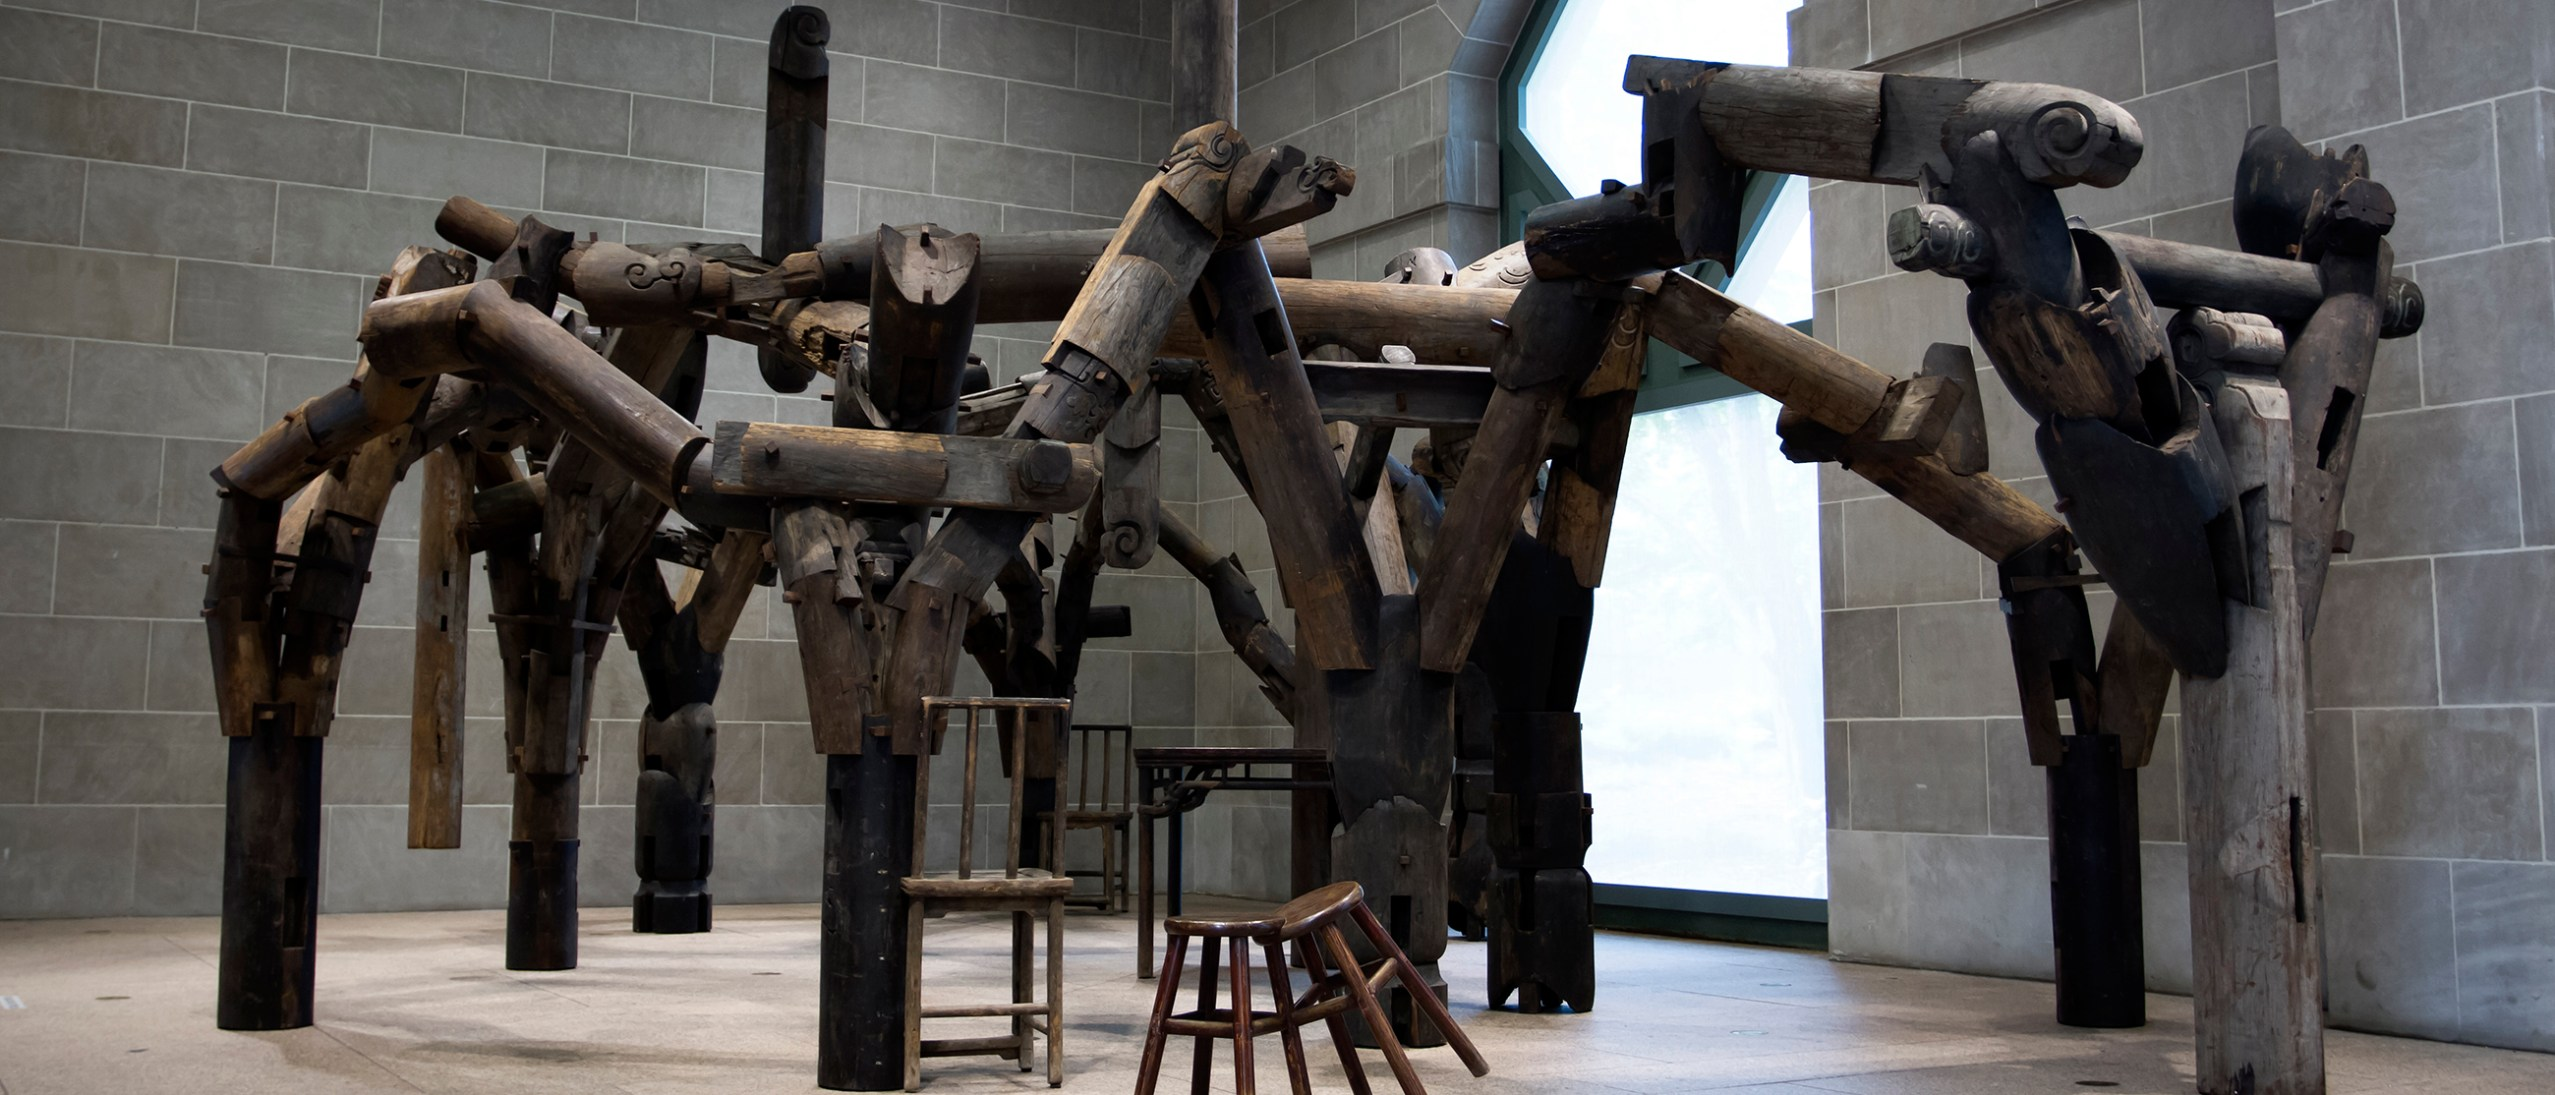 Image, Fragments, 2005. Ironwood (tieli). Tables, chairs, parts of beams, and pillars from dismantled temples of the Qing dynasty (1644–1911). Sigg Collection